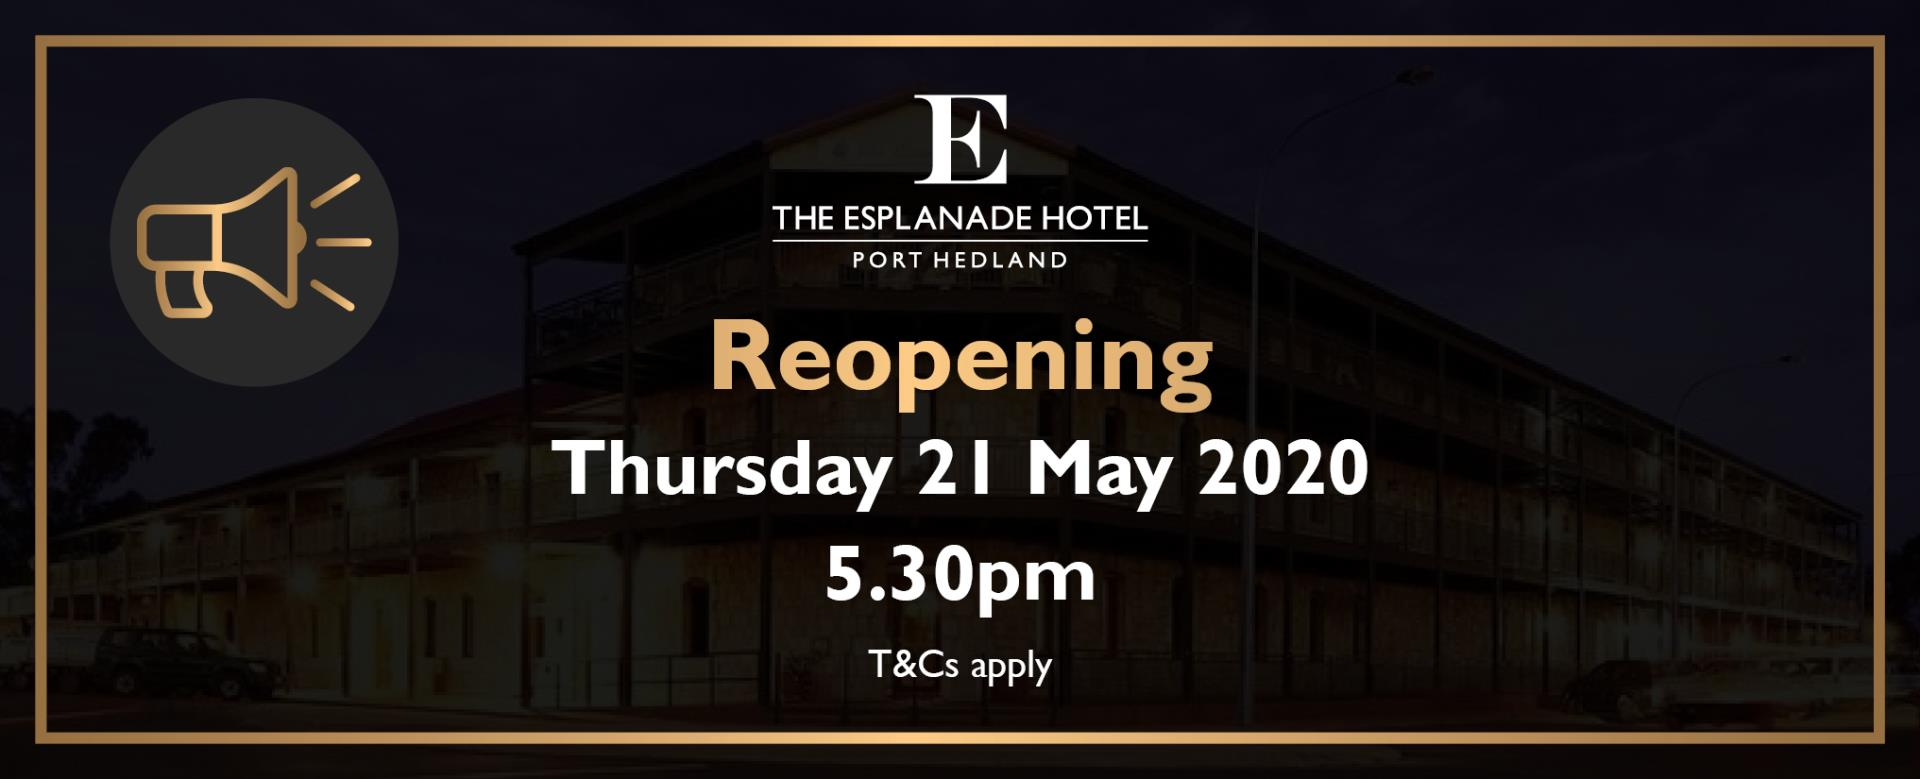 The Esplanade restaurant reopening